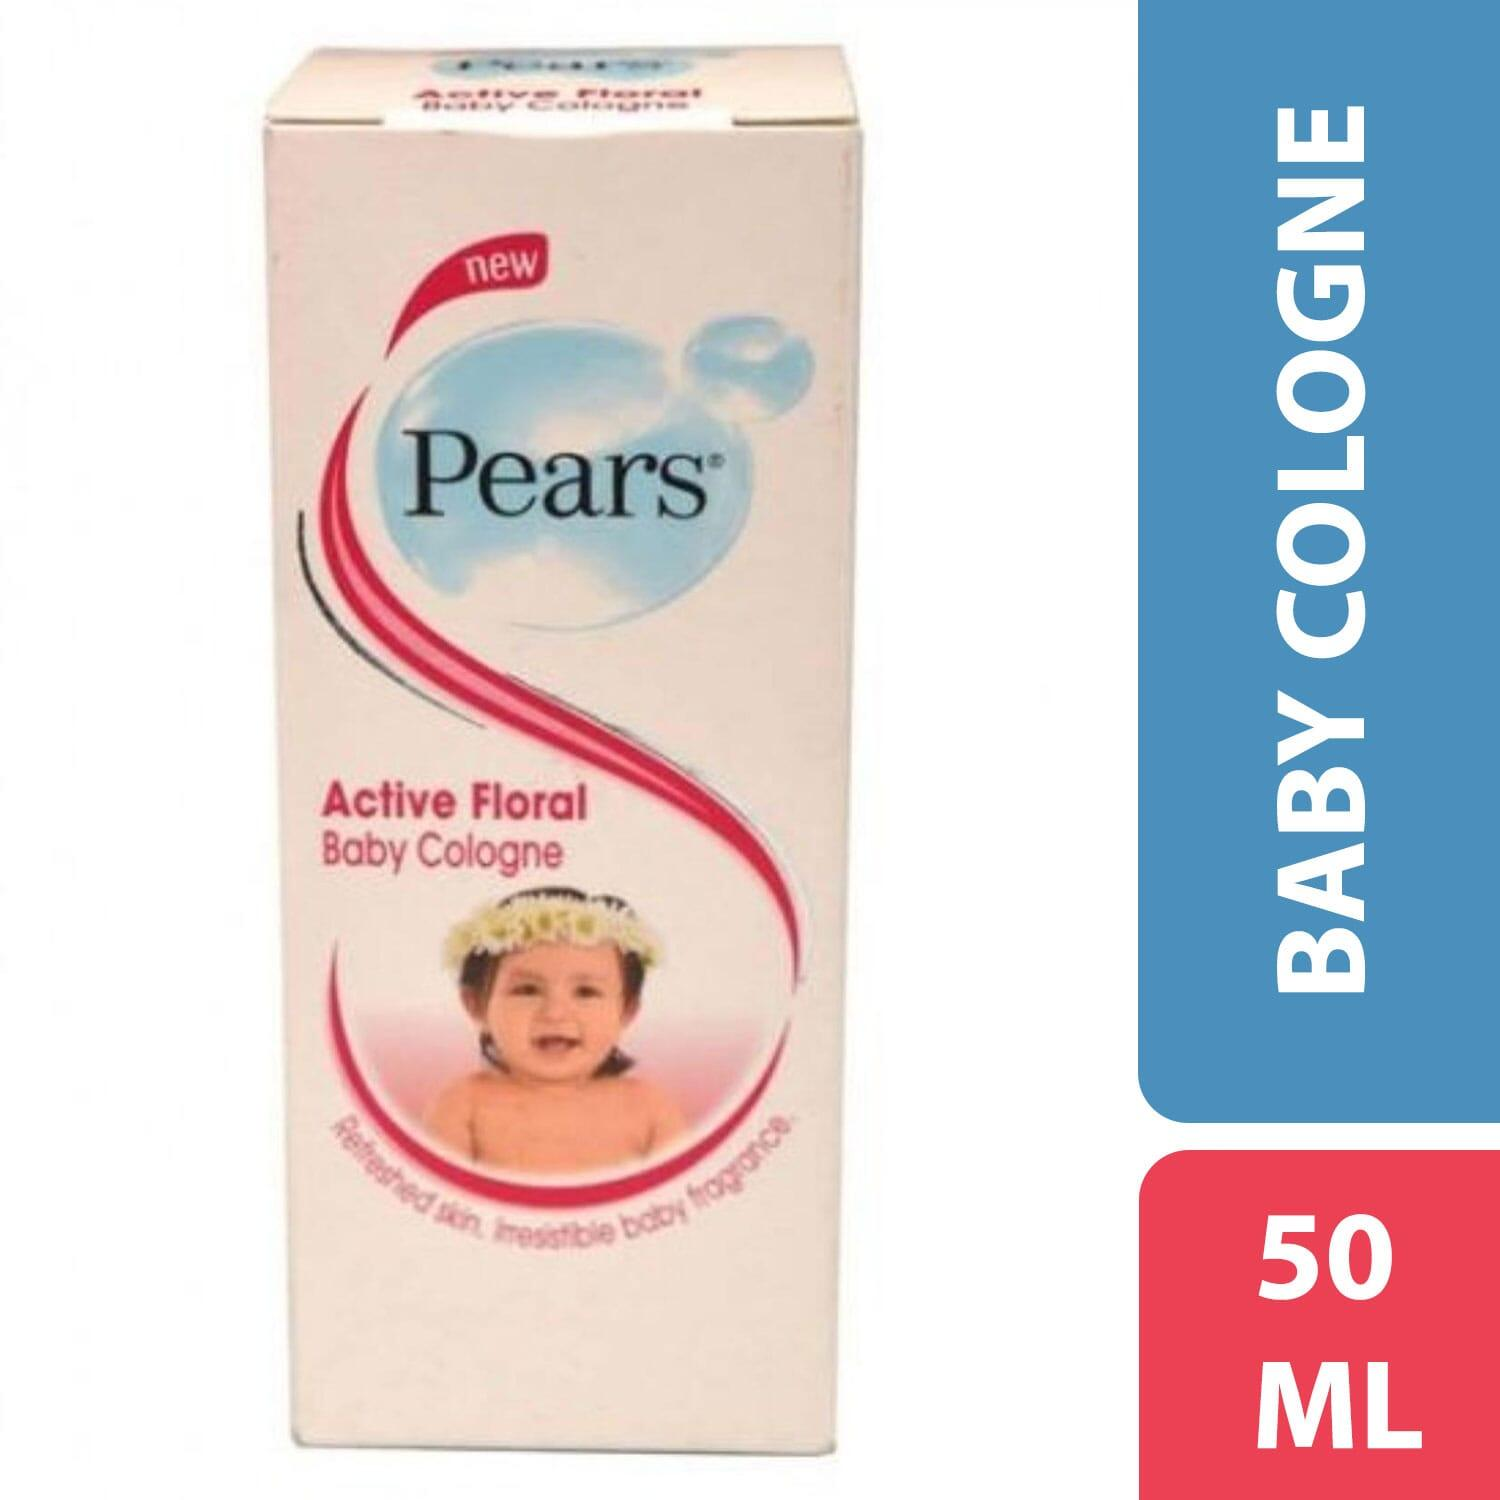 Pears Floral Cologne 50ml